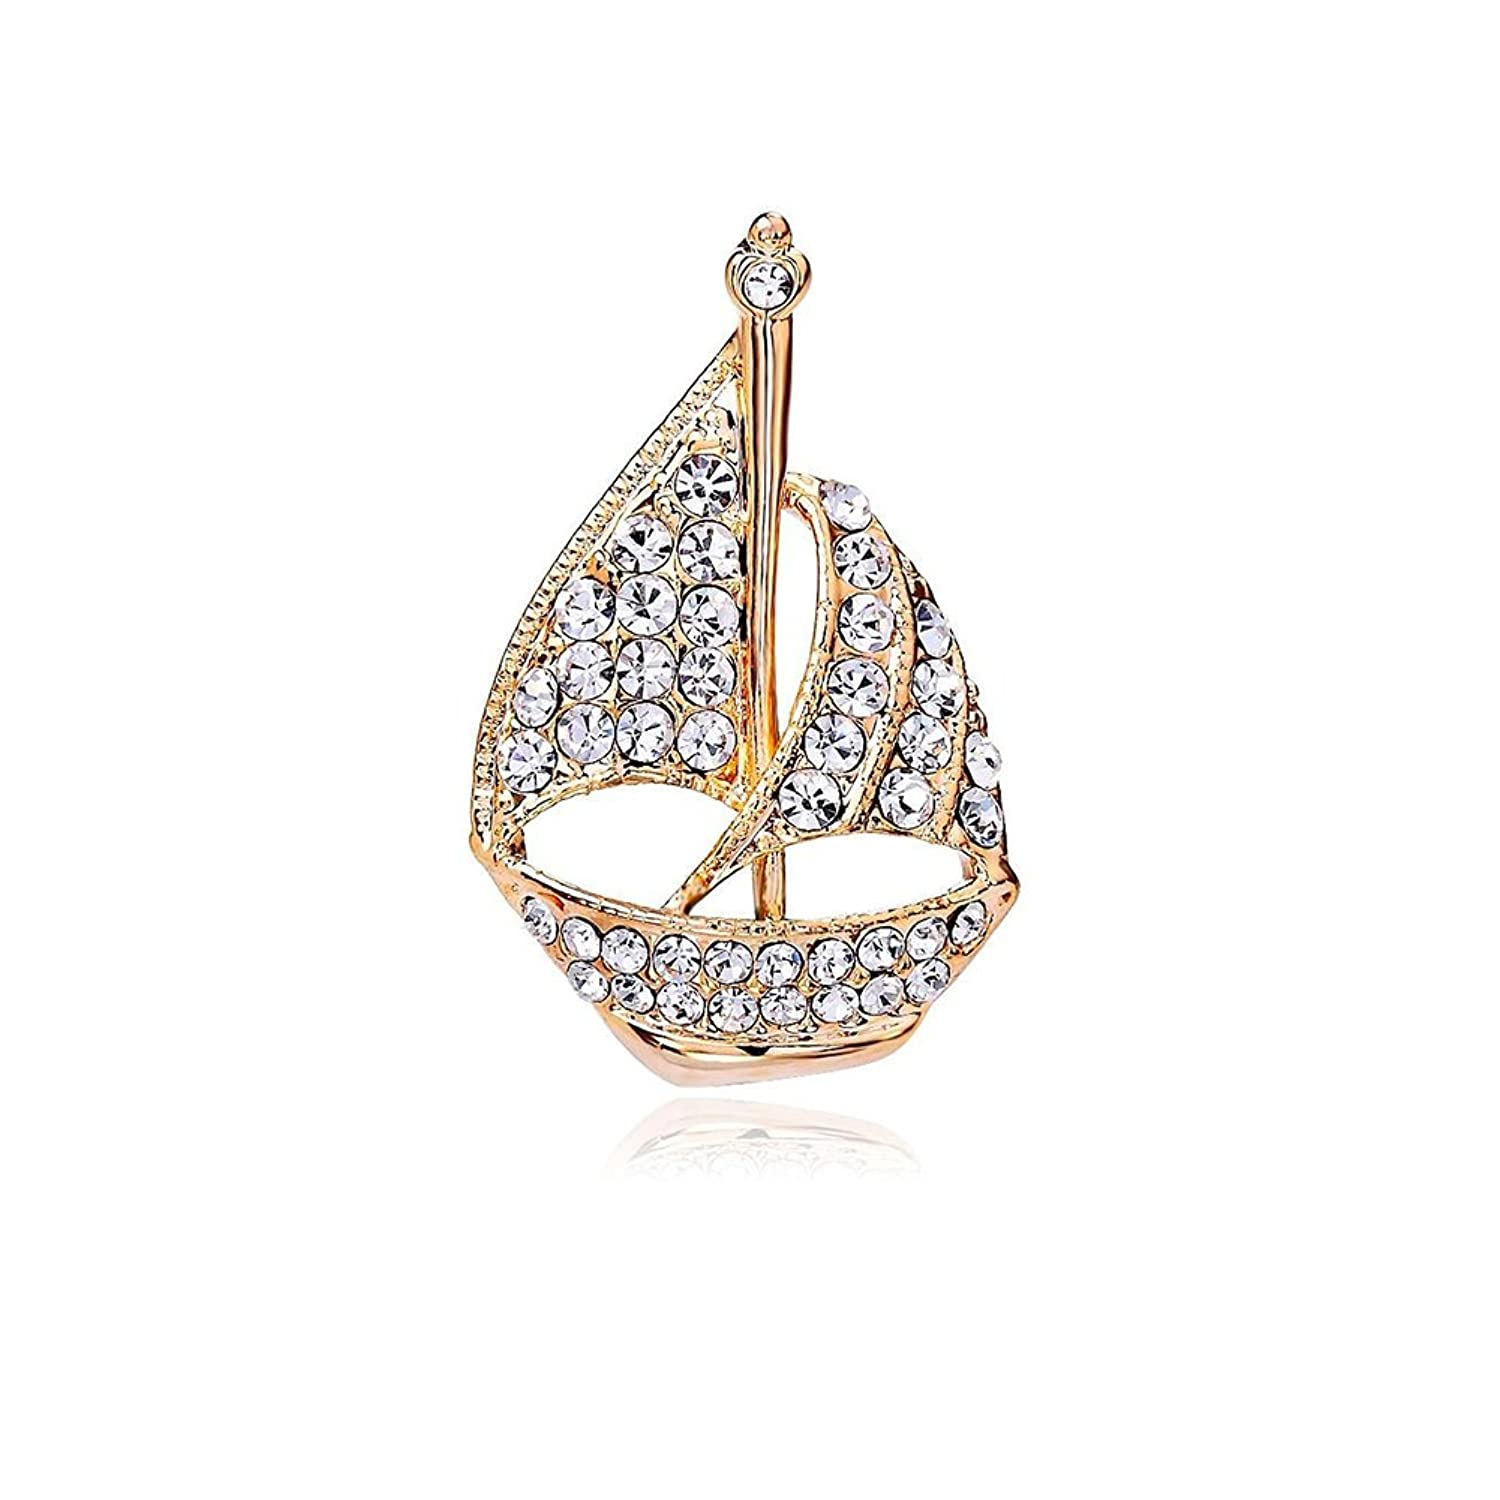 OUDUO Women's Artificial Crystal Sailboat Collar Pin Brooch Gold Tone